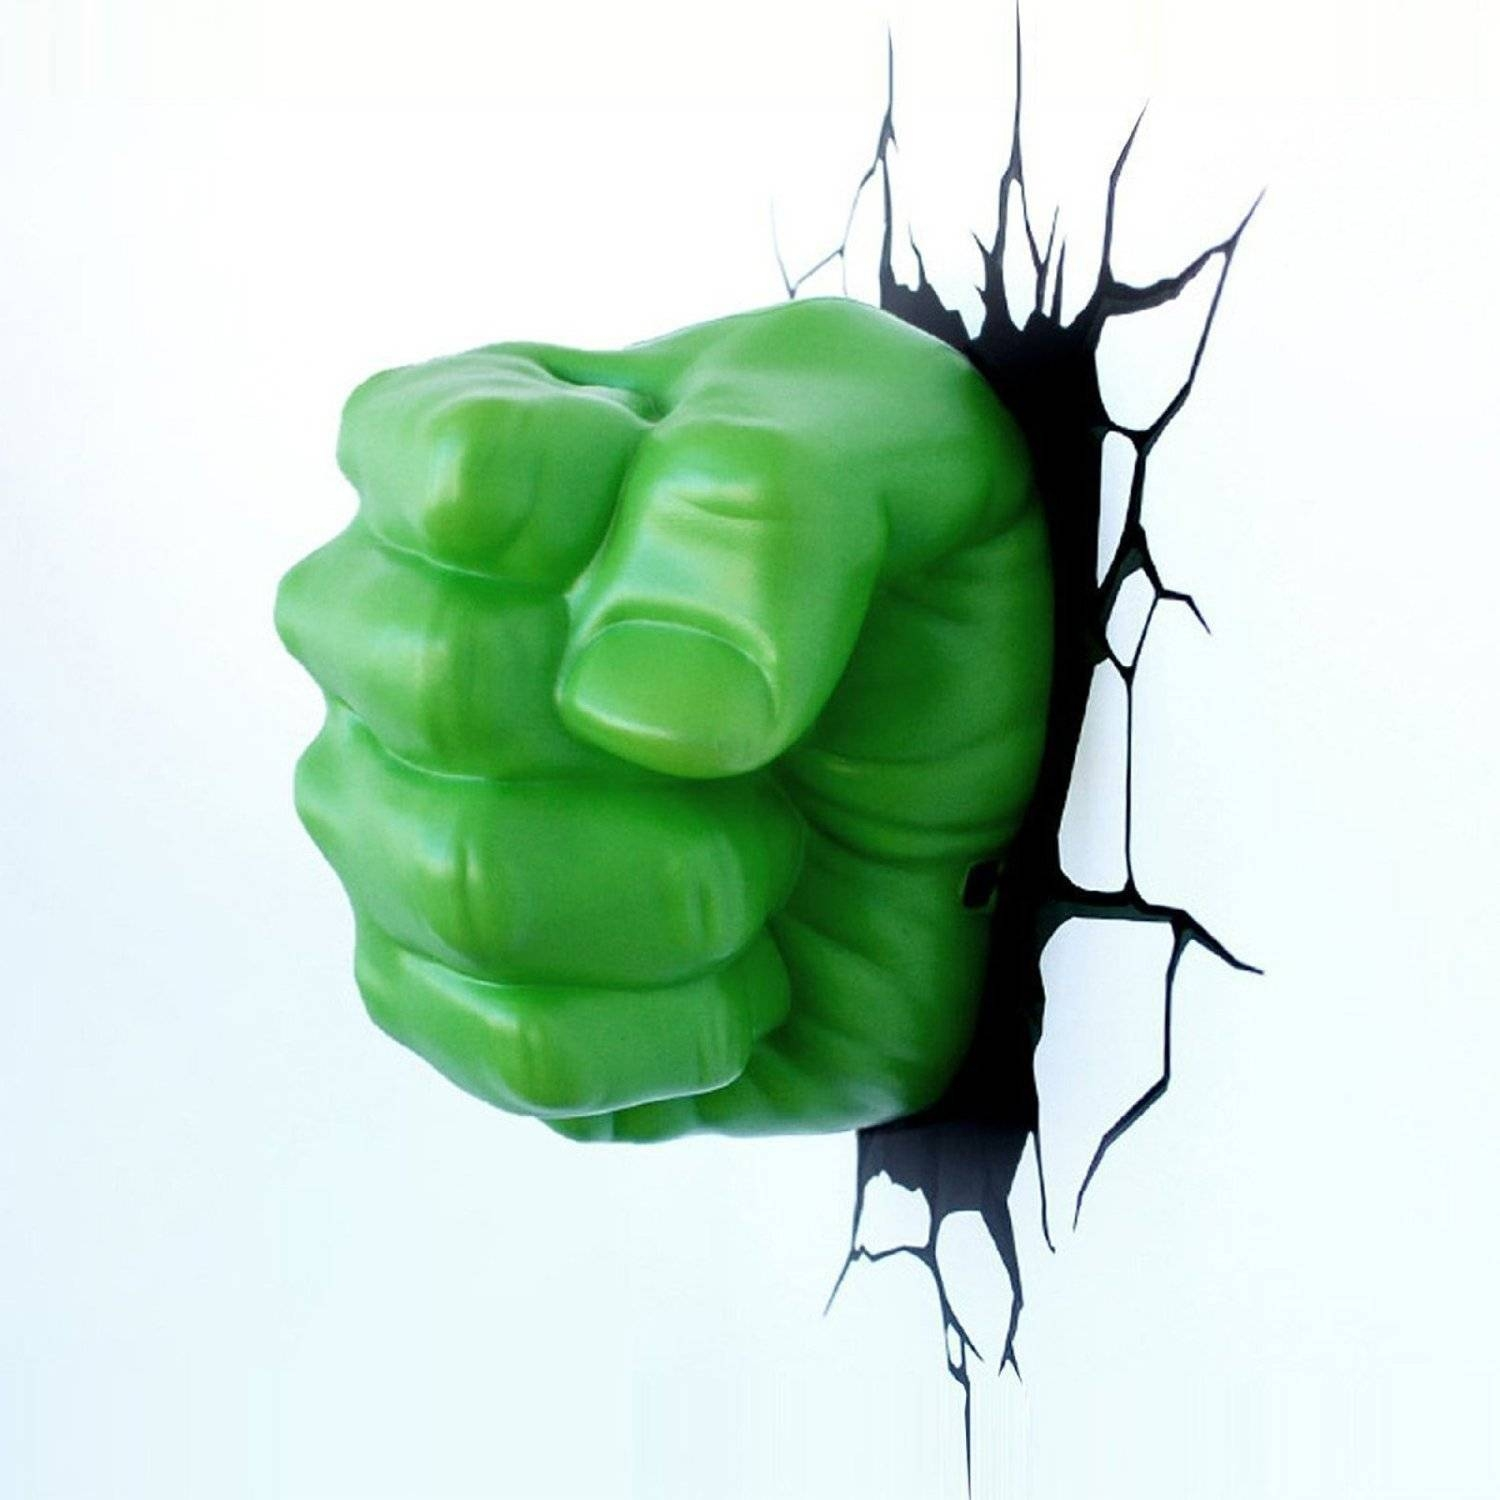 Incredible Hulk Fist Smash 3D Wall Light – Lolcoolstuff Throughout 2017 Hulk Hand 3D Wall Art (View 12 of 20)